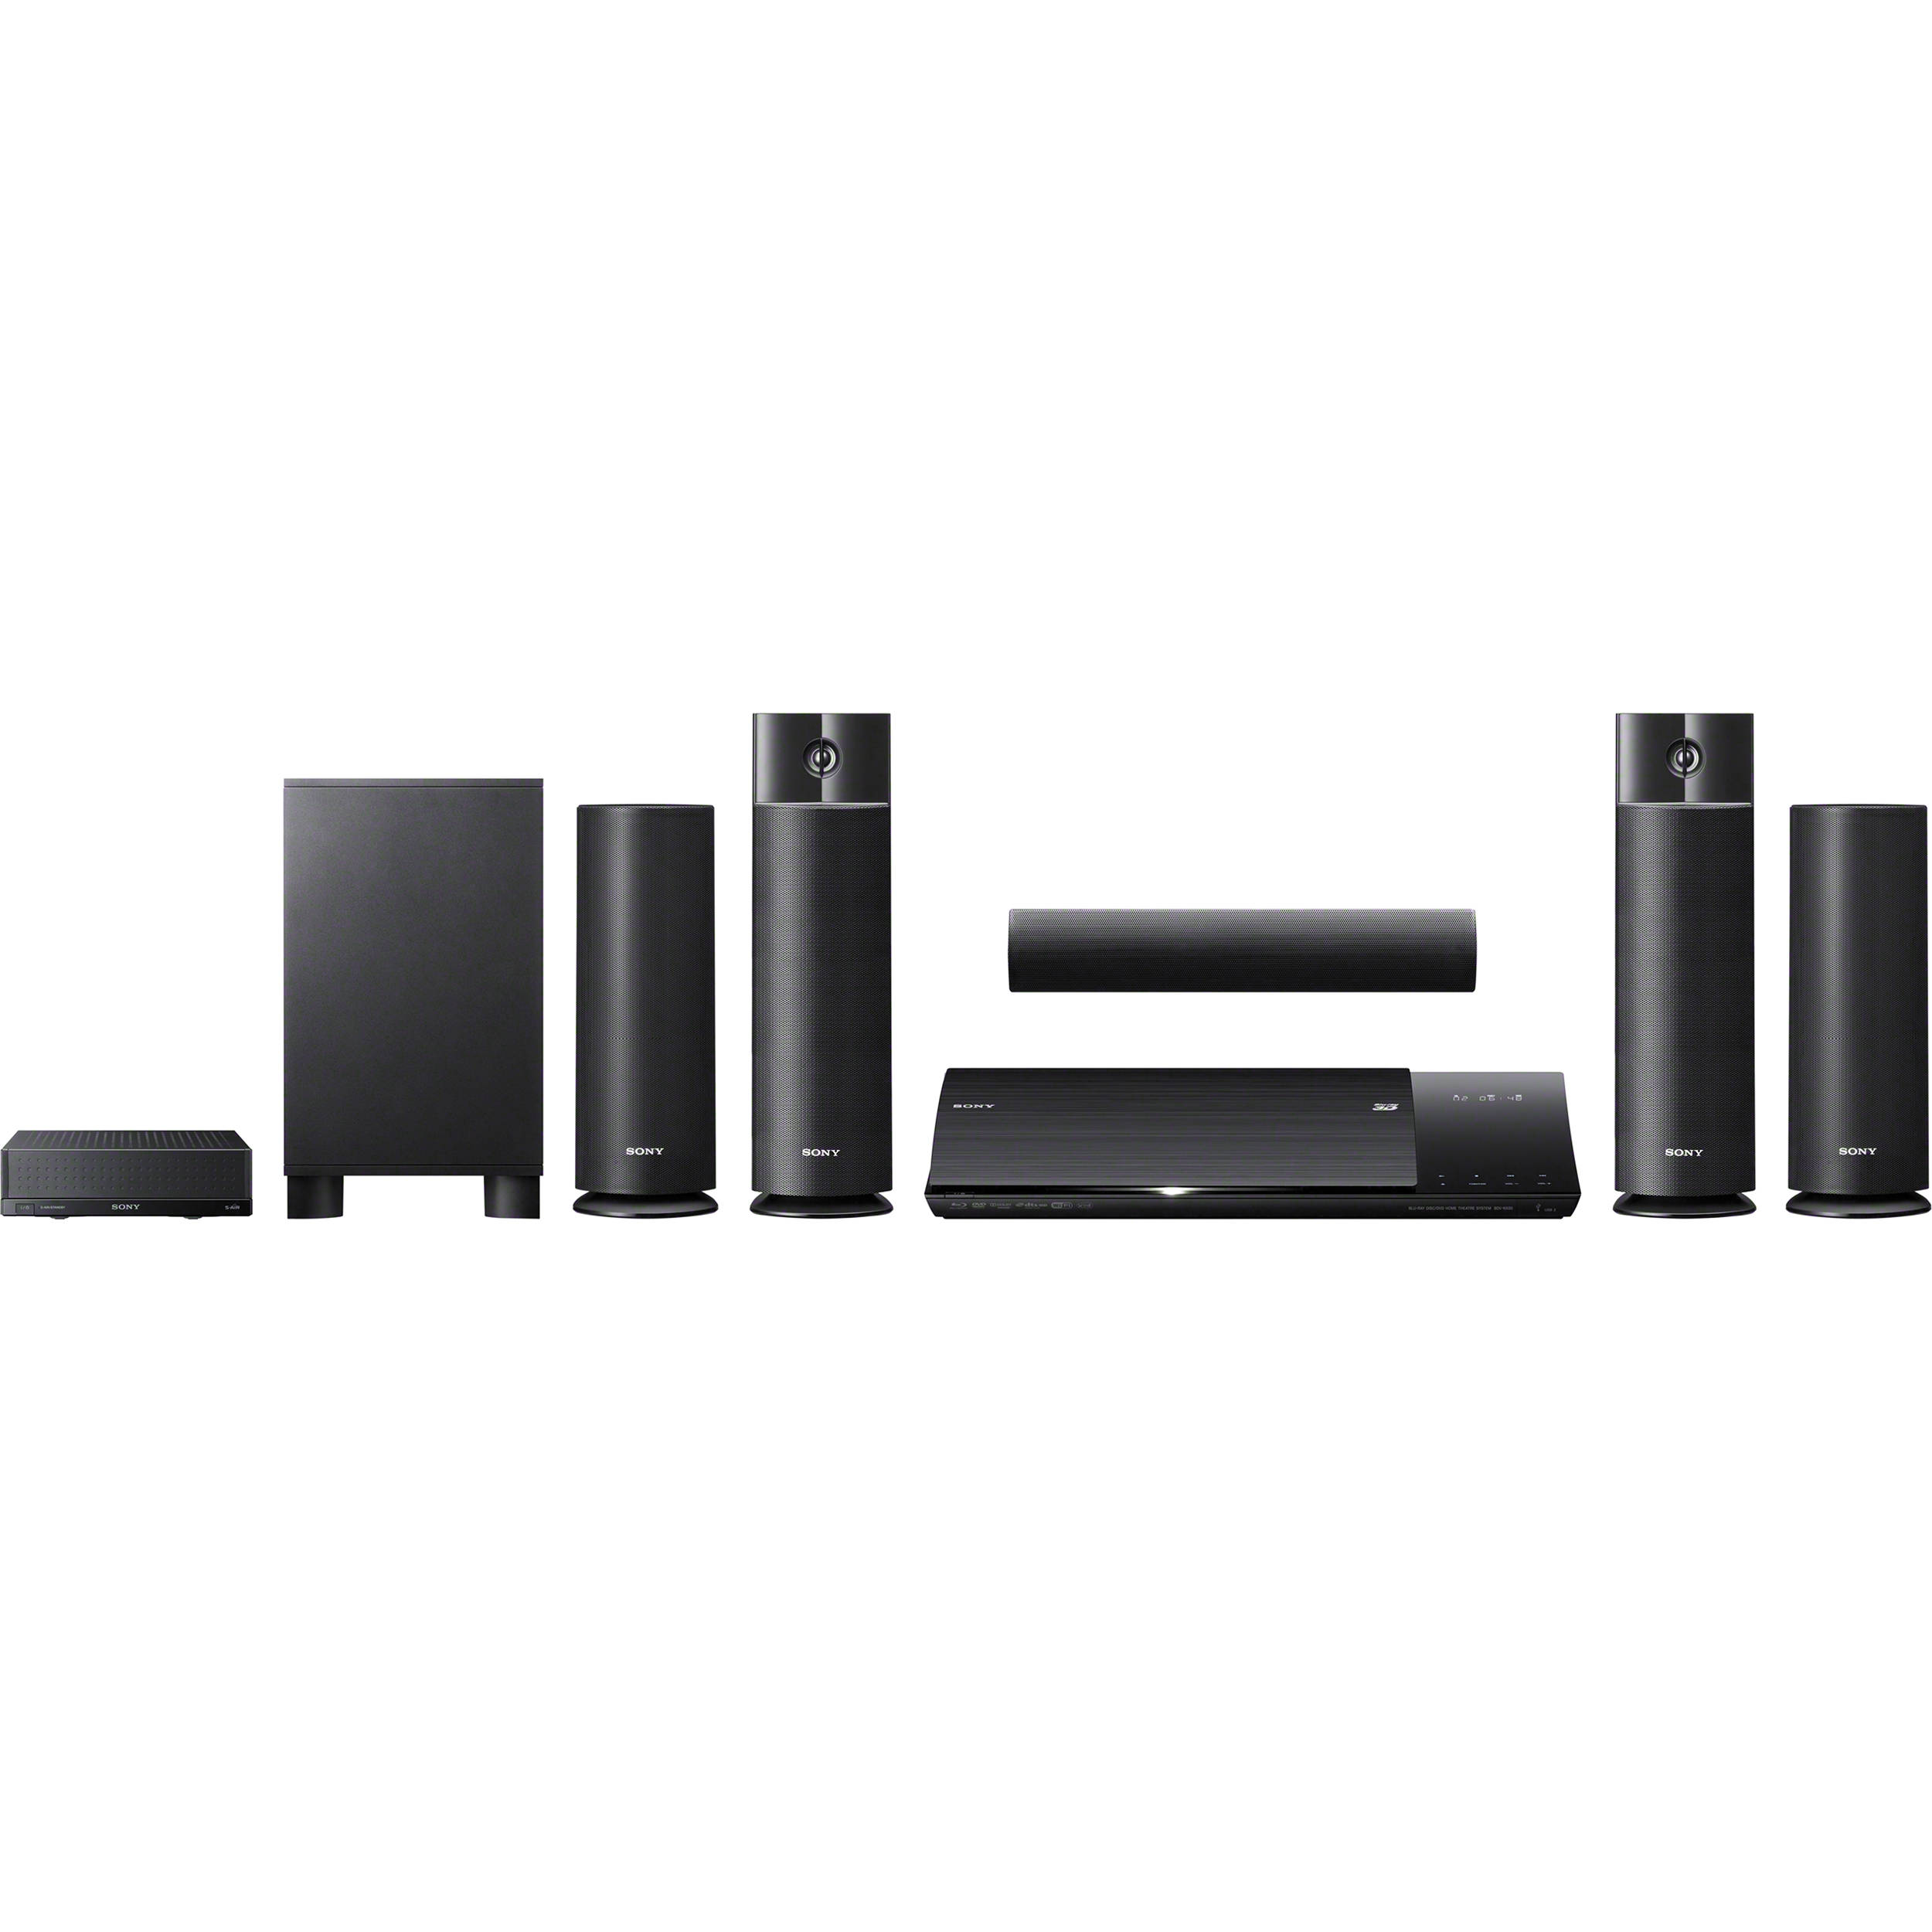 sony bdvn790w 3d blu ray home theater system bdvn790w b h photo. Black Bedroom Furniture Sets. Home Design Ideas